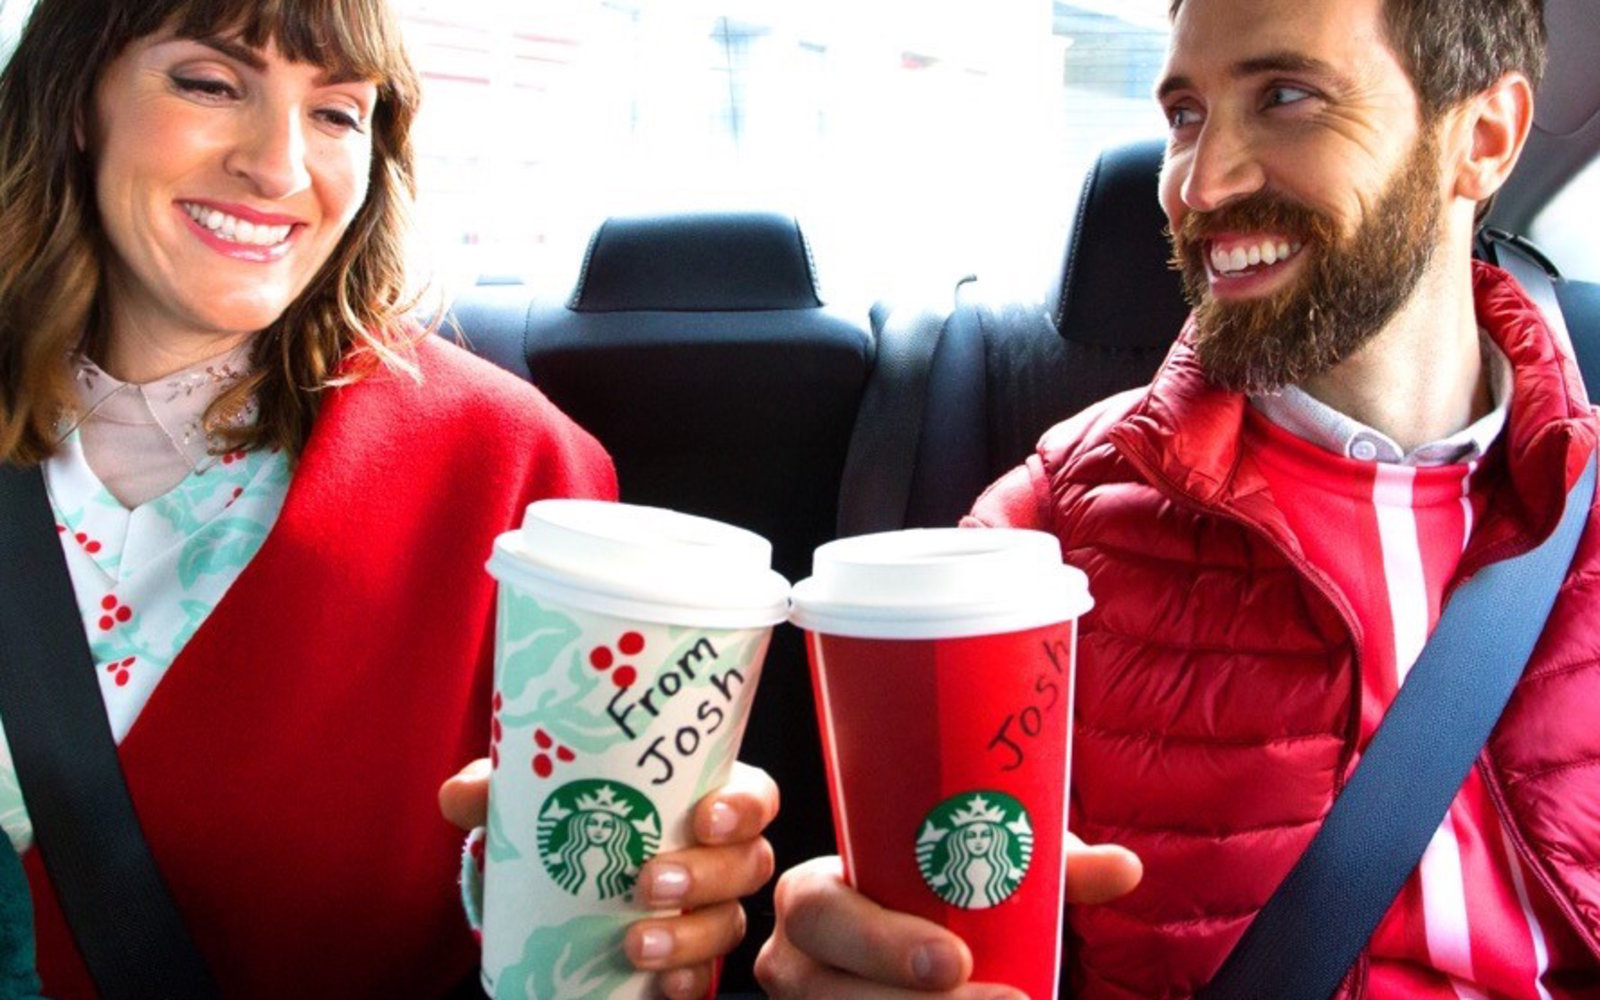 You Can Get Free Starbucks Just for Taking Uber This Week